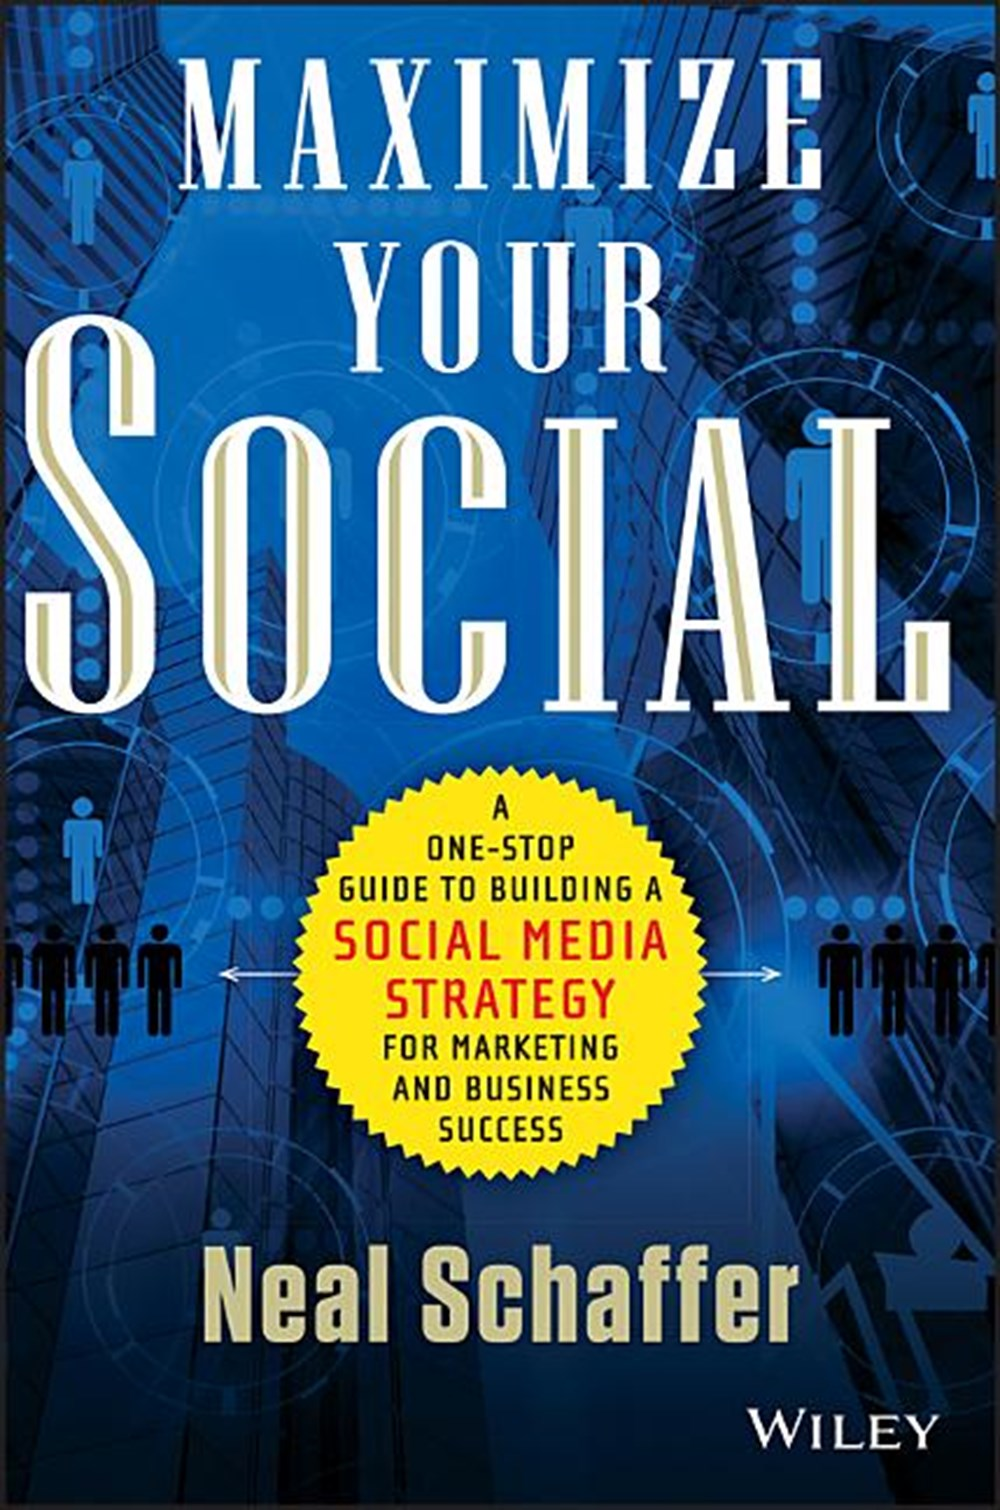 Maximize Your Social A One-Stop Guide to Building a Social Media Strategy for Marketing and Business